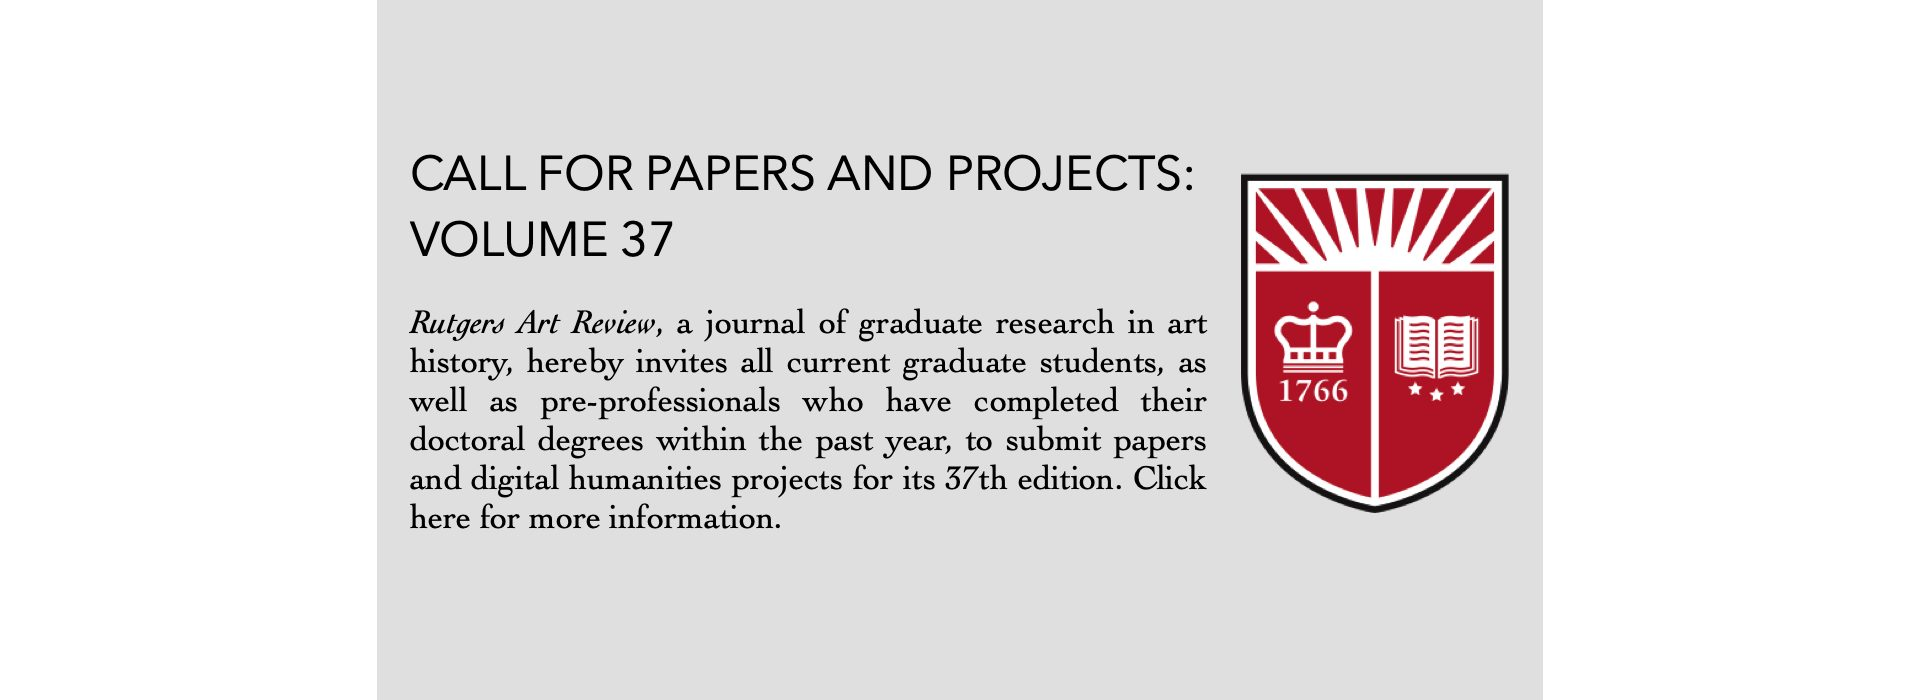 Permalink to: Call for Papers and Projects